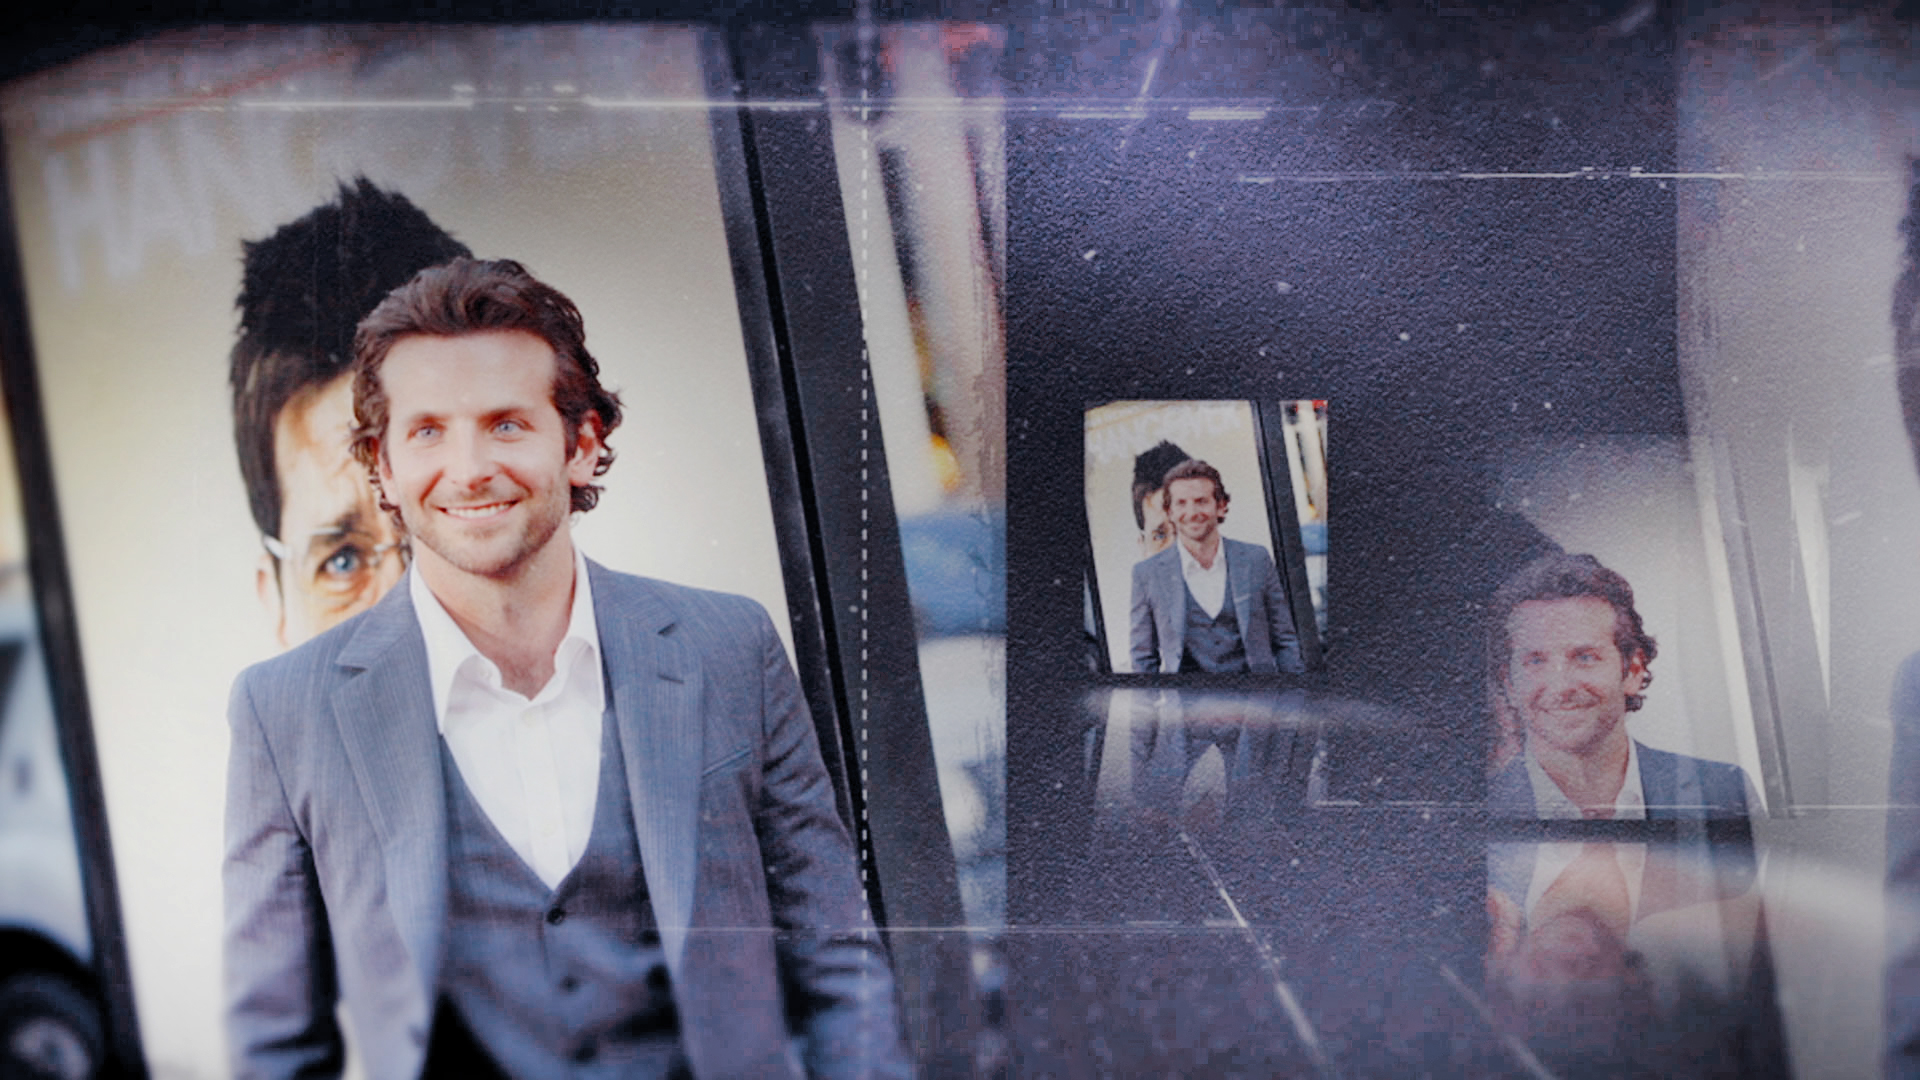 Bradley Cooper: From Character Actor to Leading Man